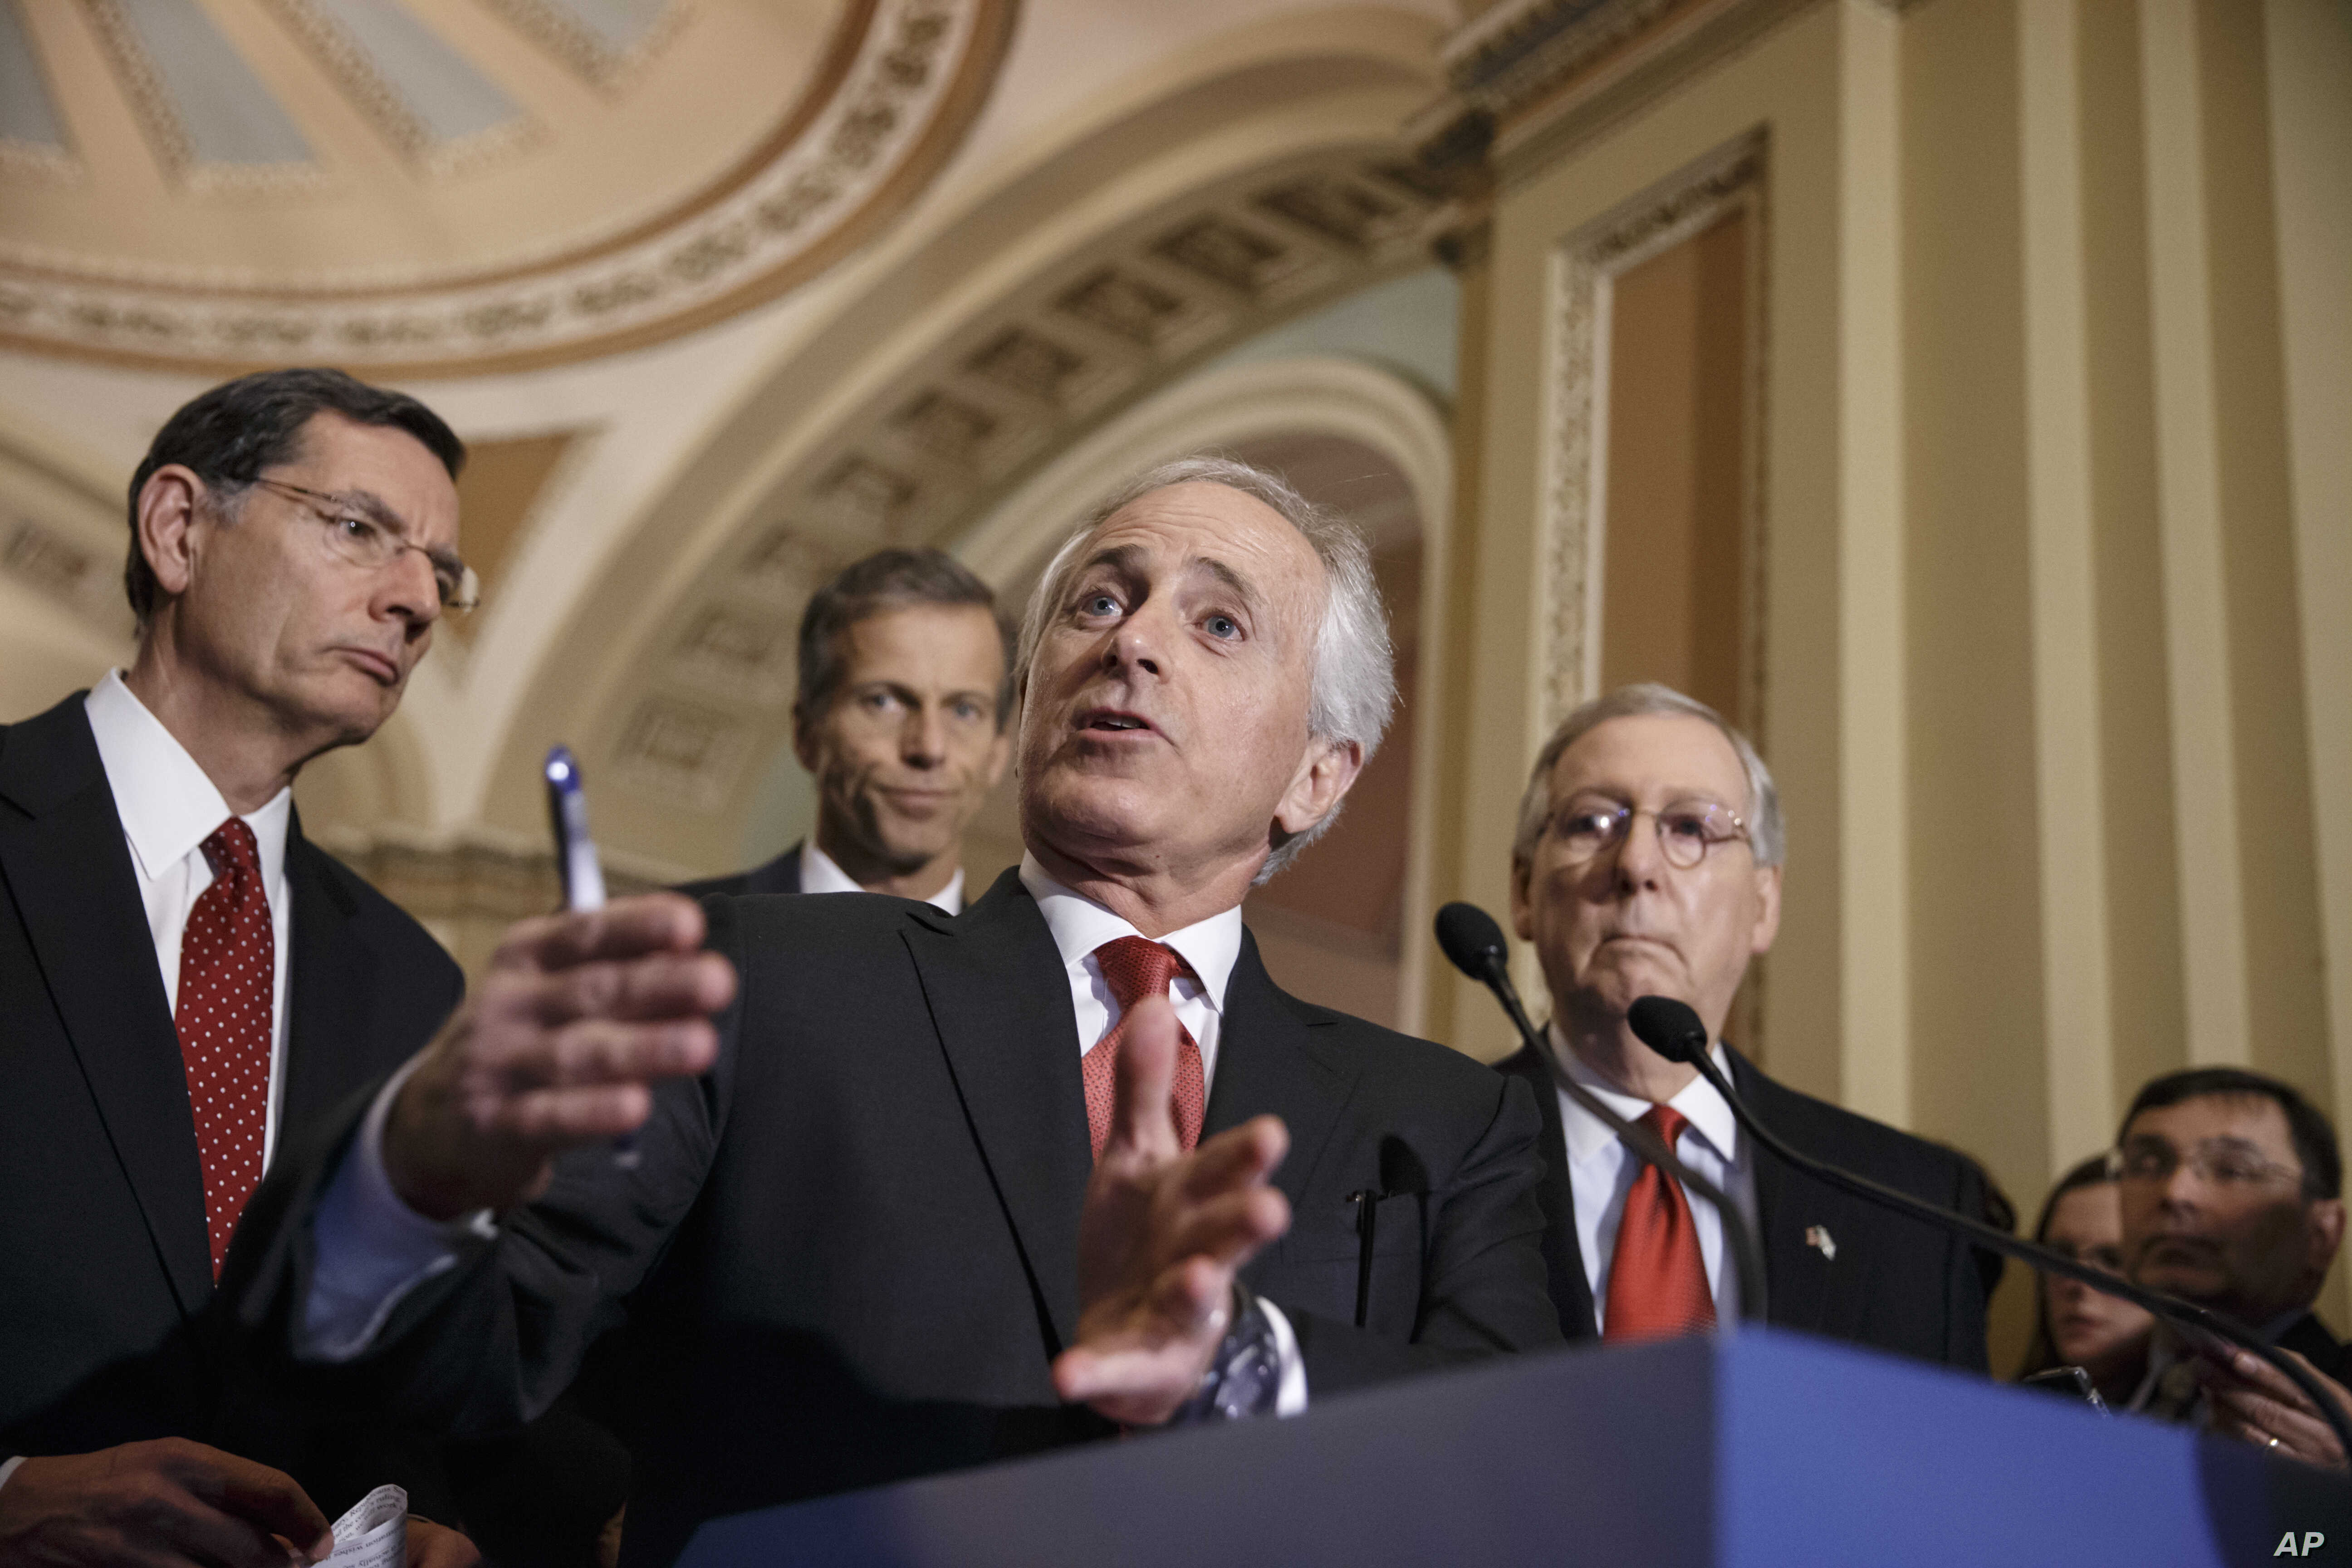 Senate Foreign Relations Committee Chairman Bob Corker, R-Tenn., outlines his bipartisan bill requiring congressional review of any comprehensive nuclear agreement that President Barack Obama reaches with Iran, at the Capitol in Washington, March 3,